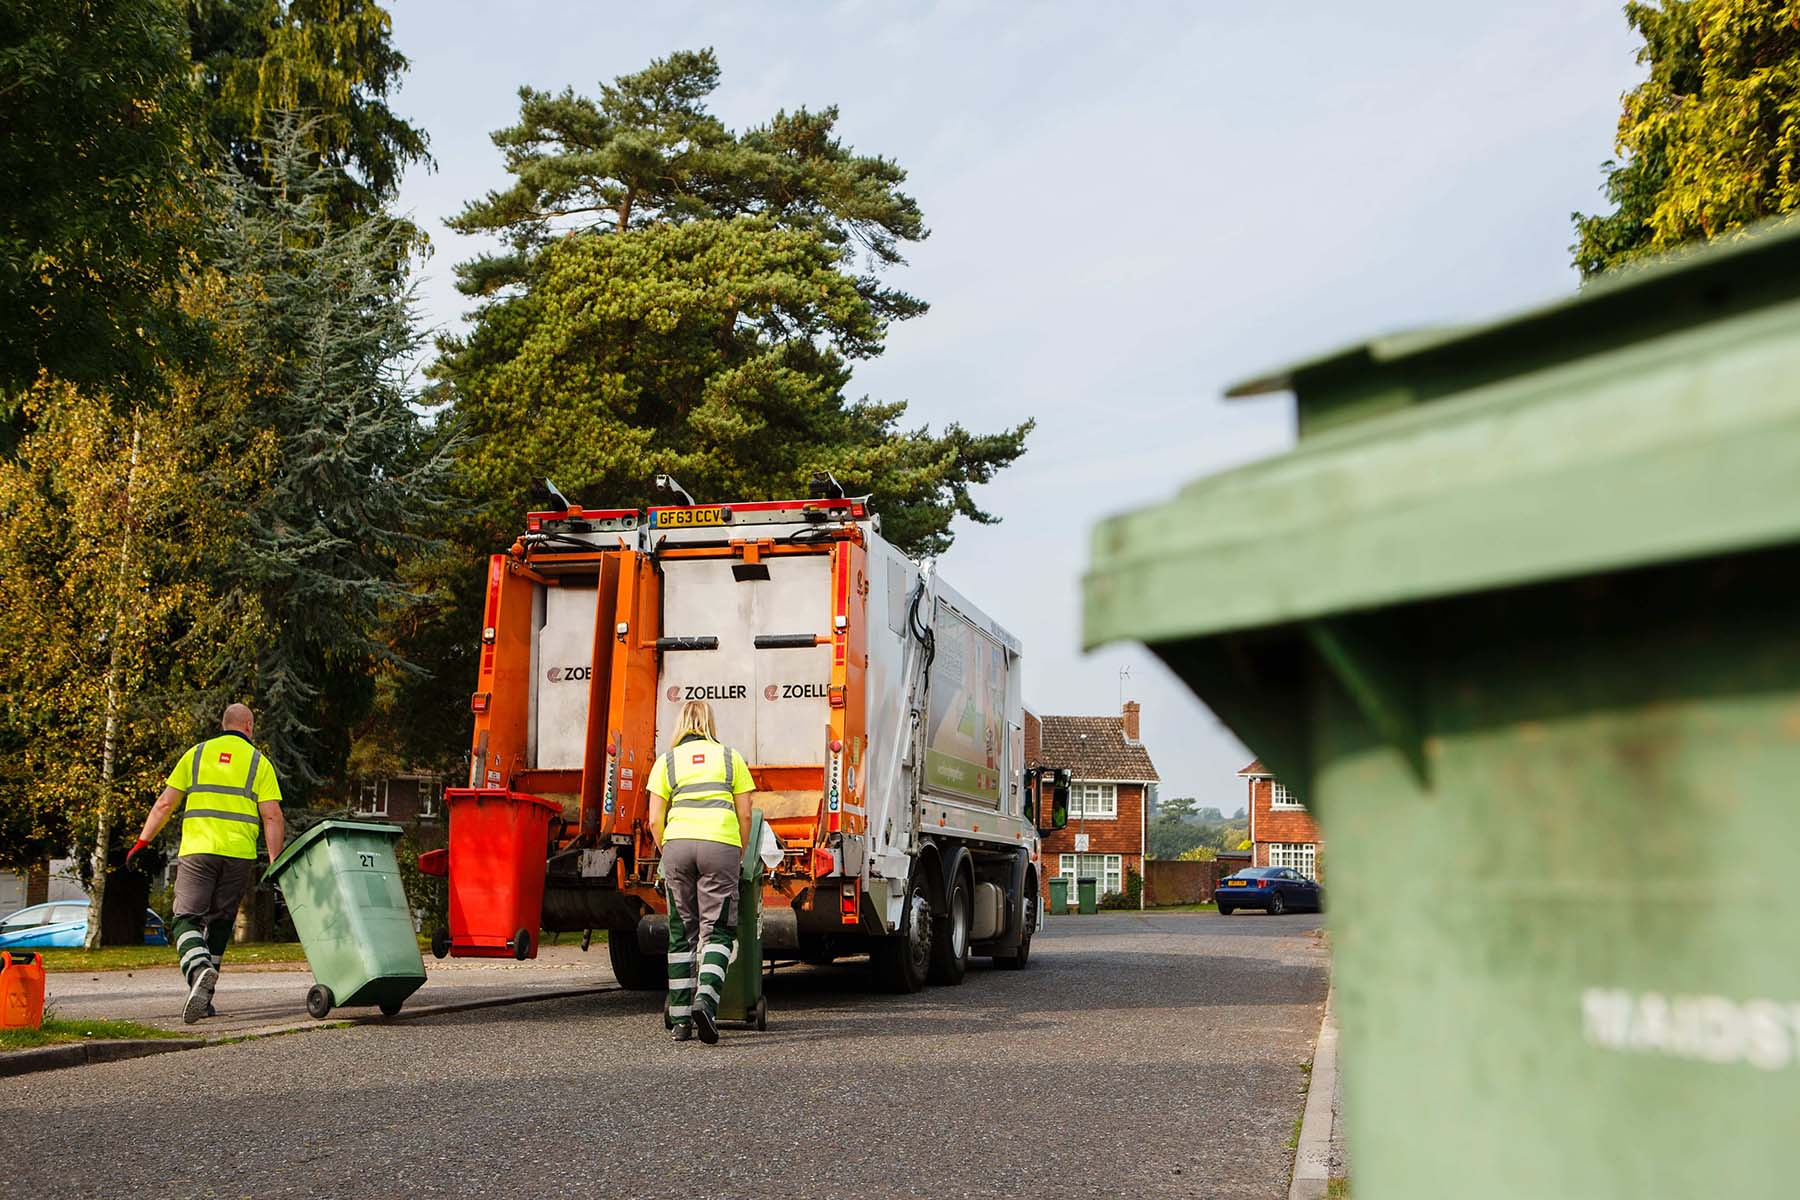 Biffa has been found guilty of attempting to export household waste to China